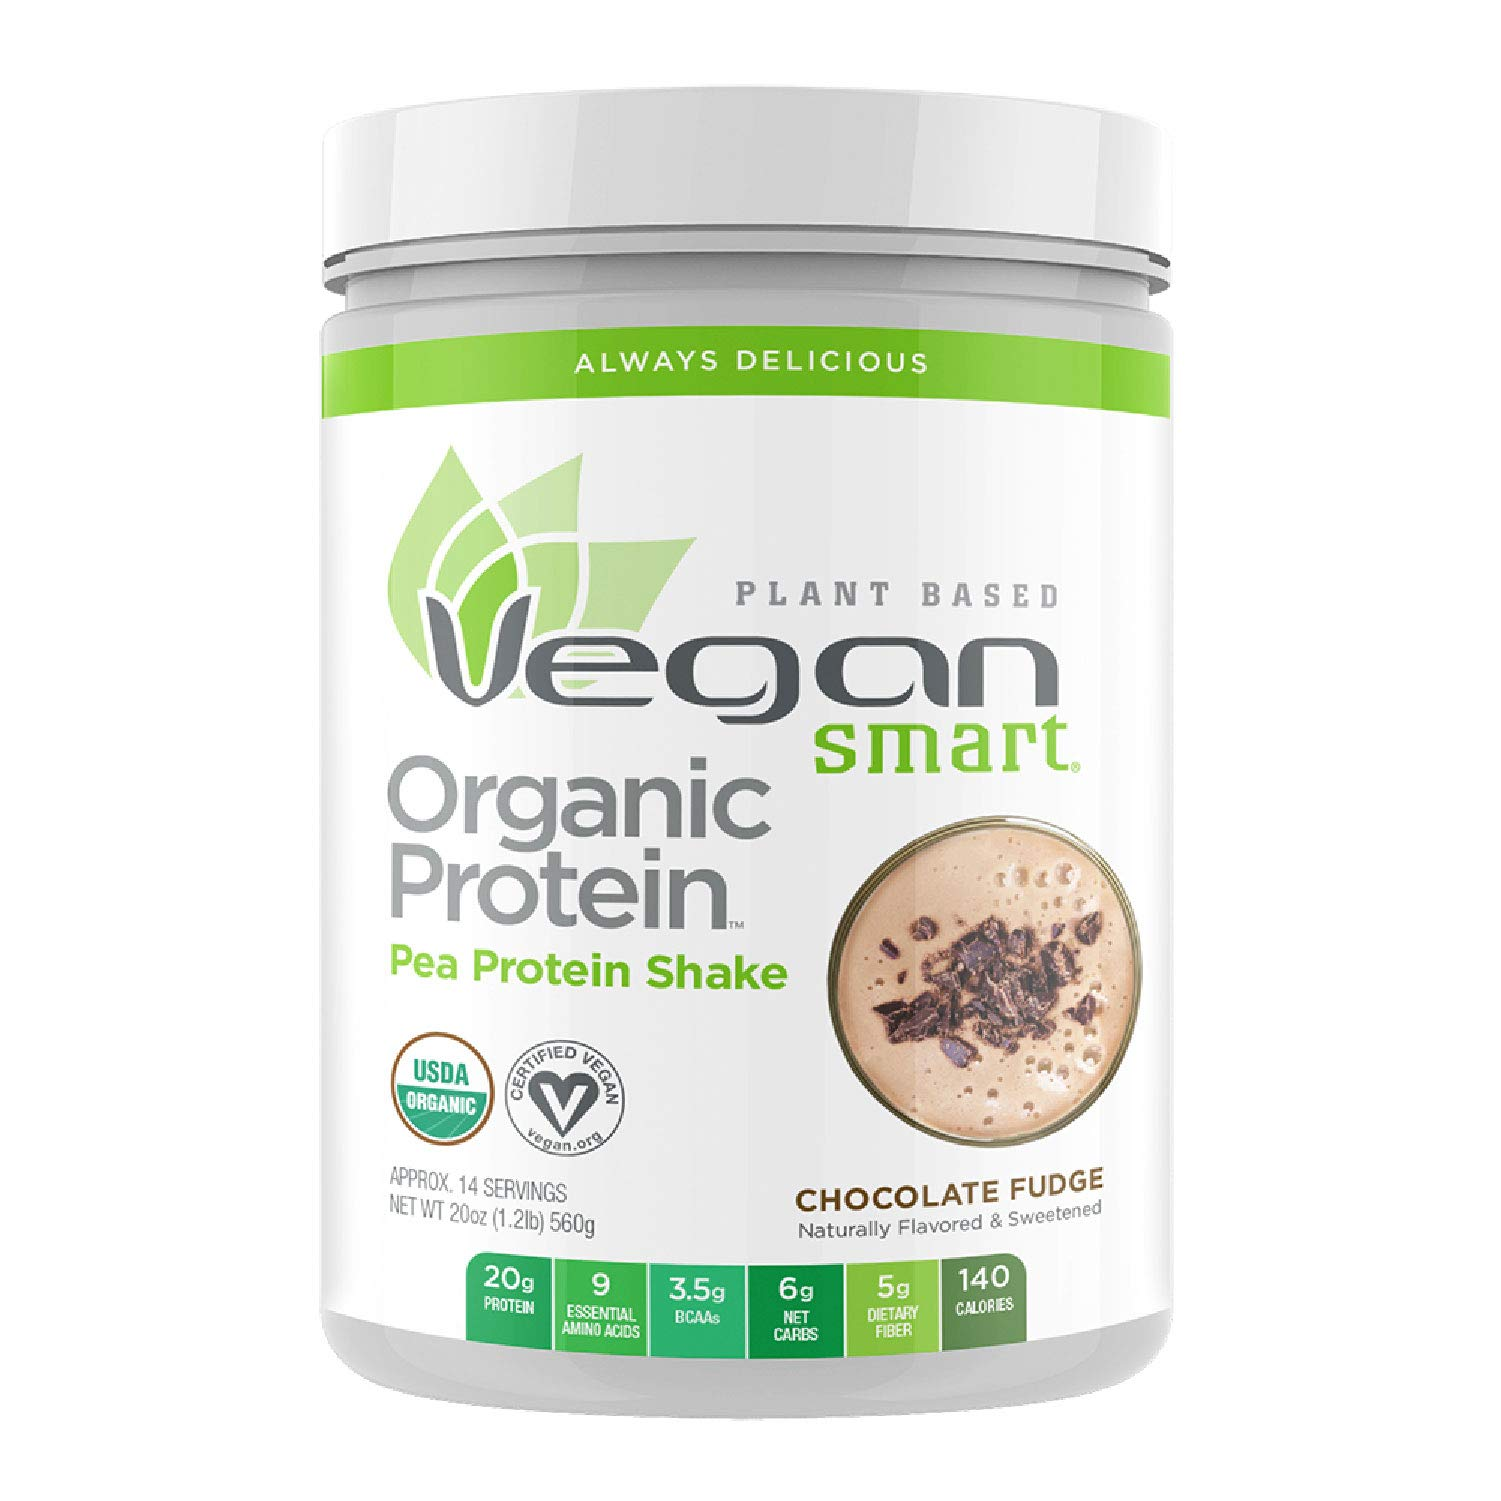 Vegansmart Plant Based Organic Pea Protein Powder by Naturade, 20 Ounce, Chocolate Fudge by Vegansmart